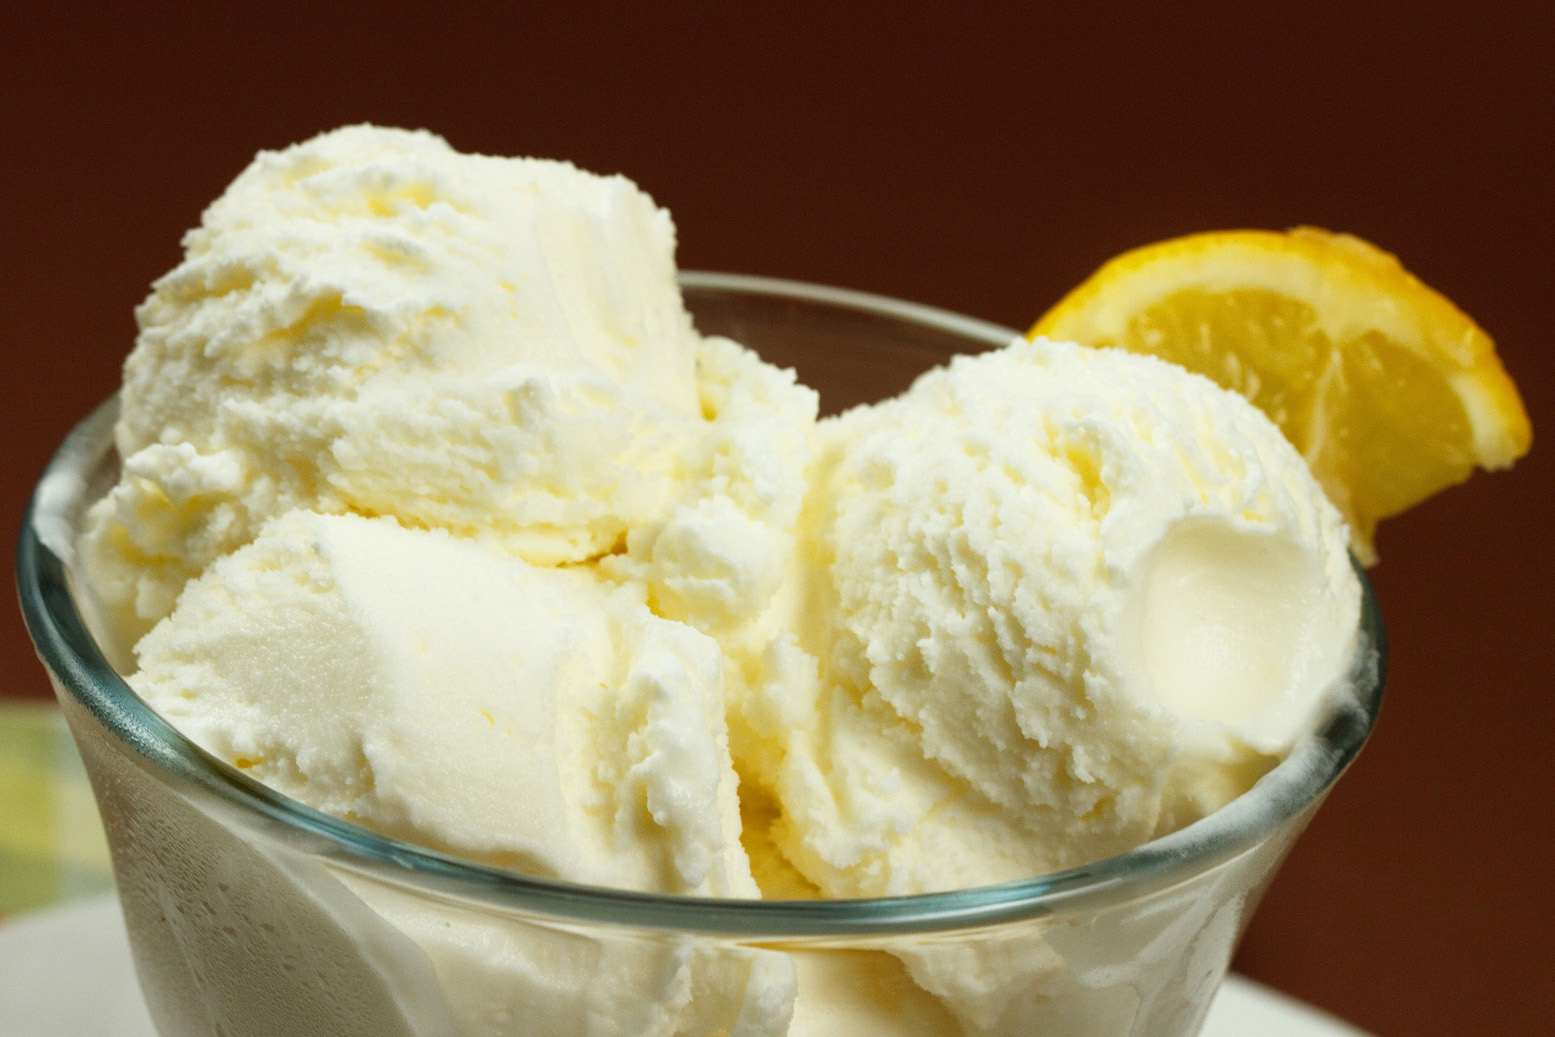 16007-the-modus-operandi-of-lemon-ice-cream.jpg